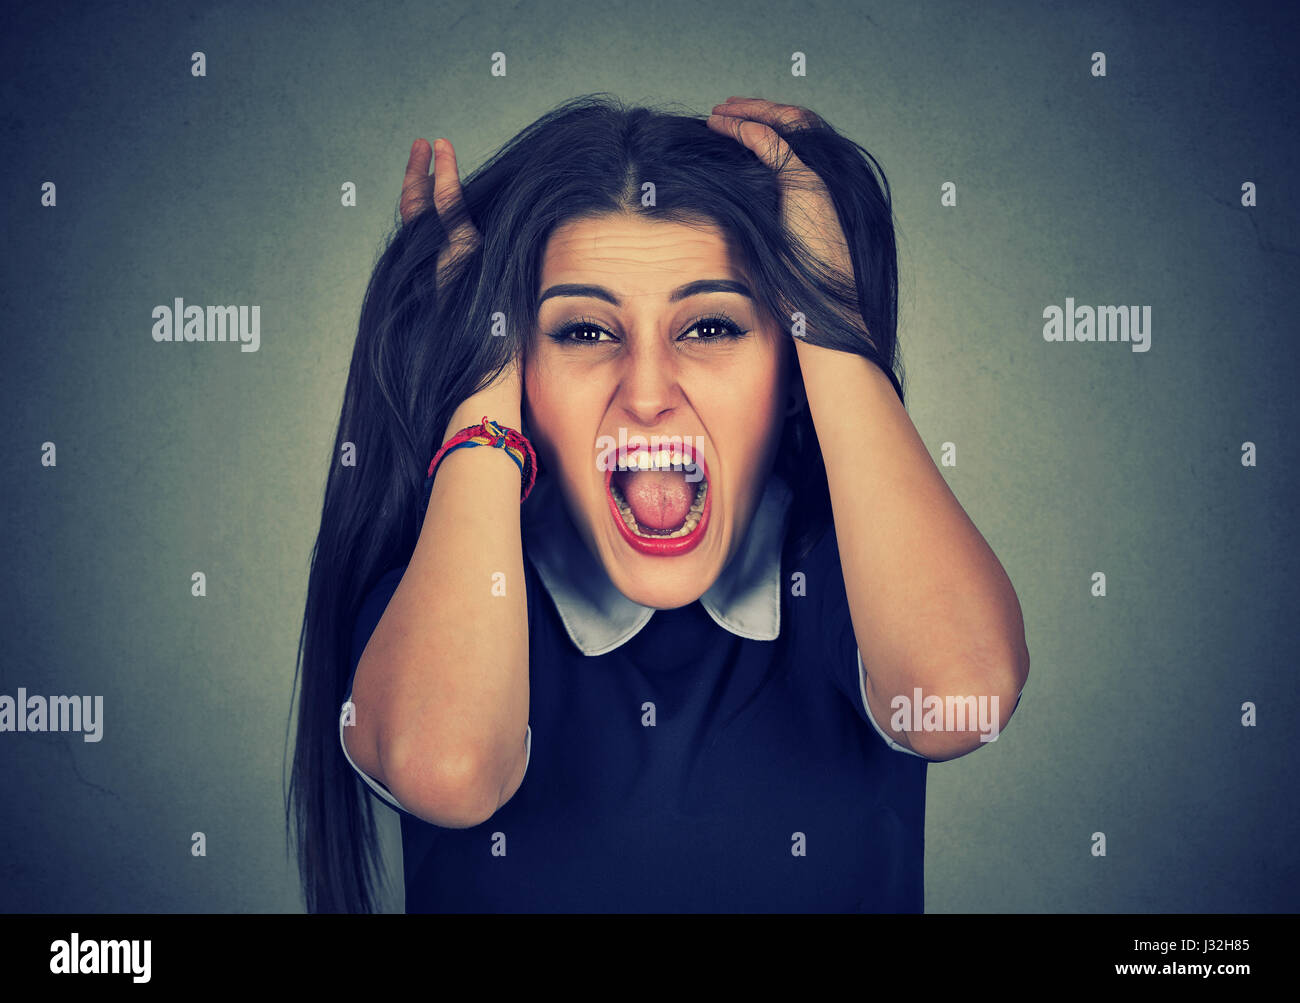 Stressed out young woman pulling her hair - Stock Image